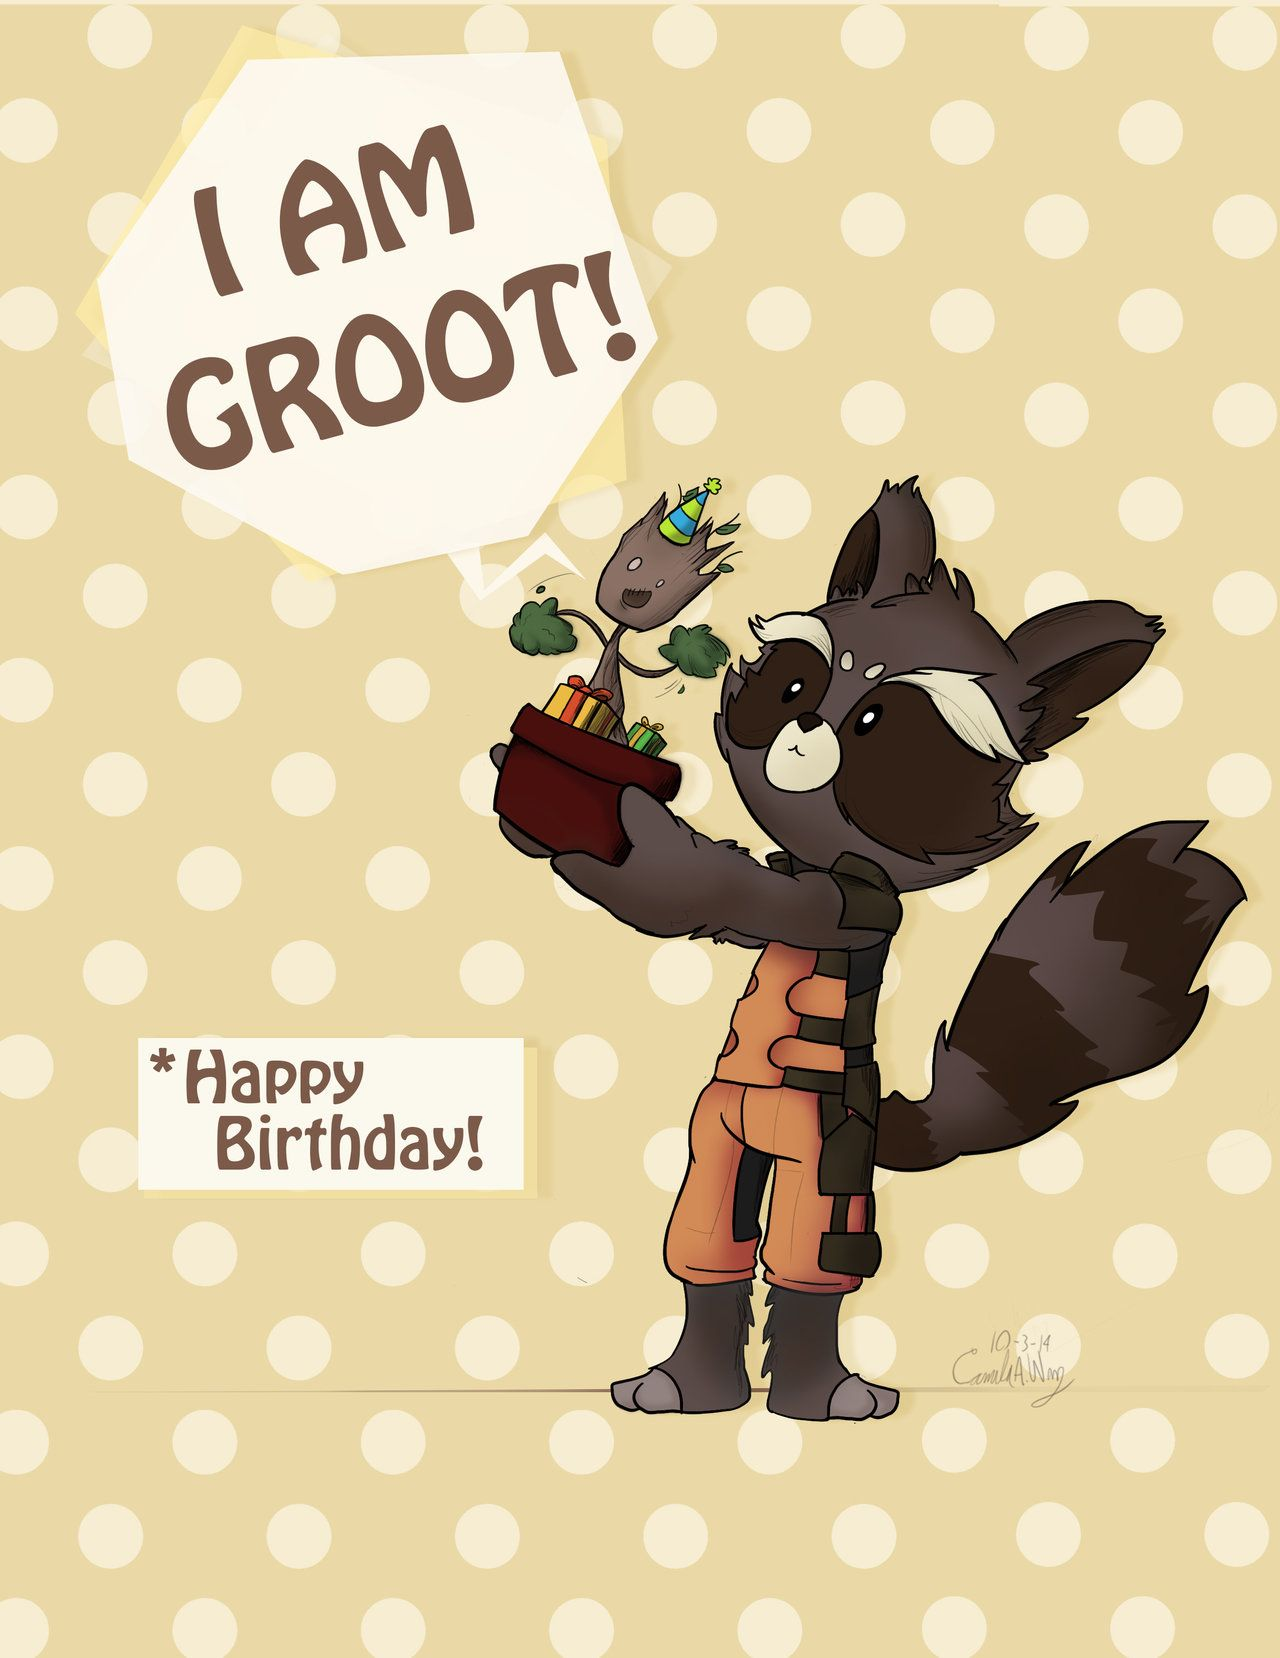 Happy Birthday From Rocket and Groot by kamy2425